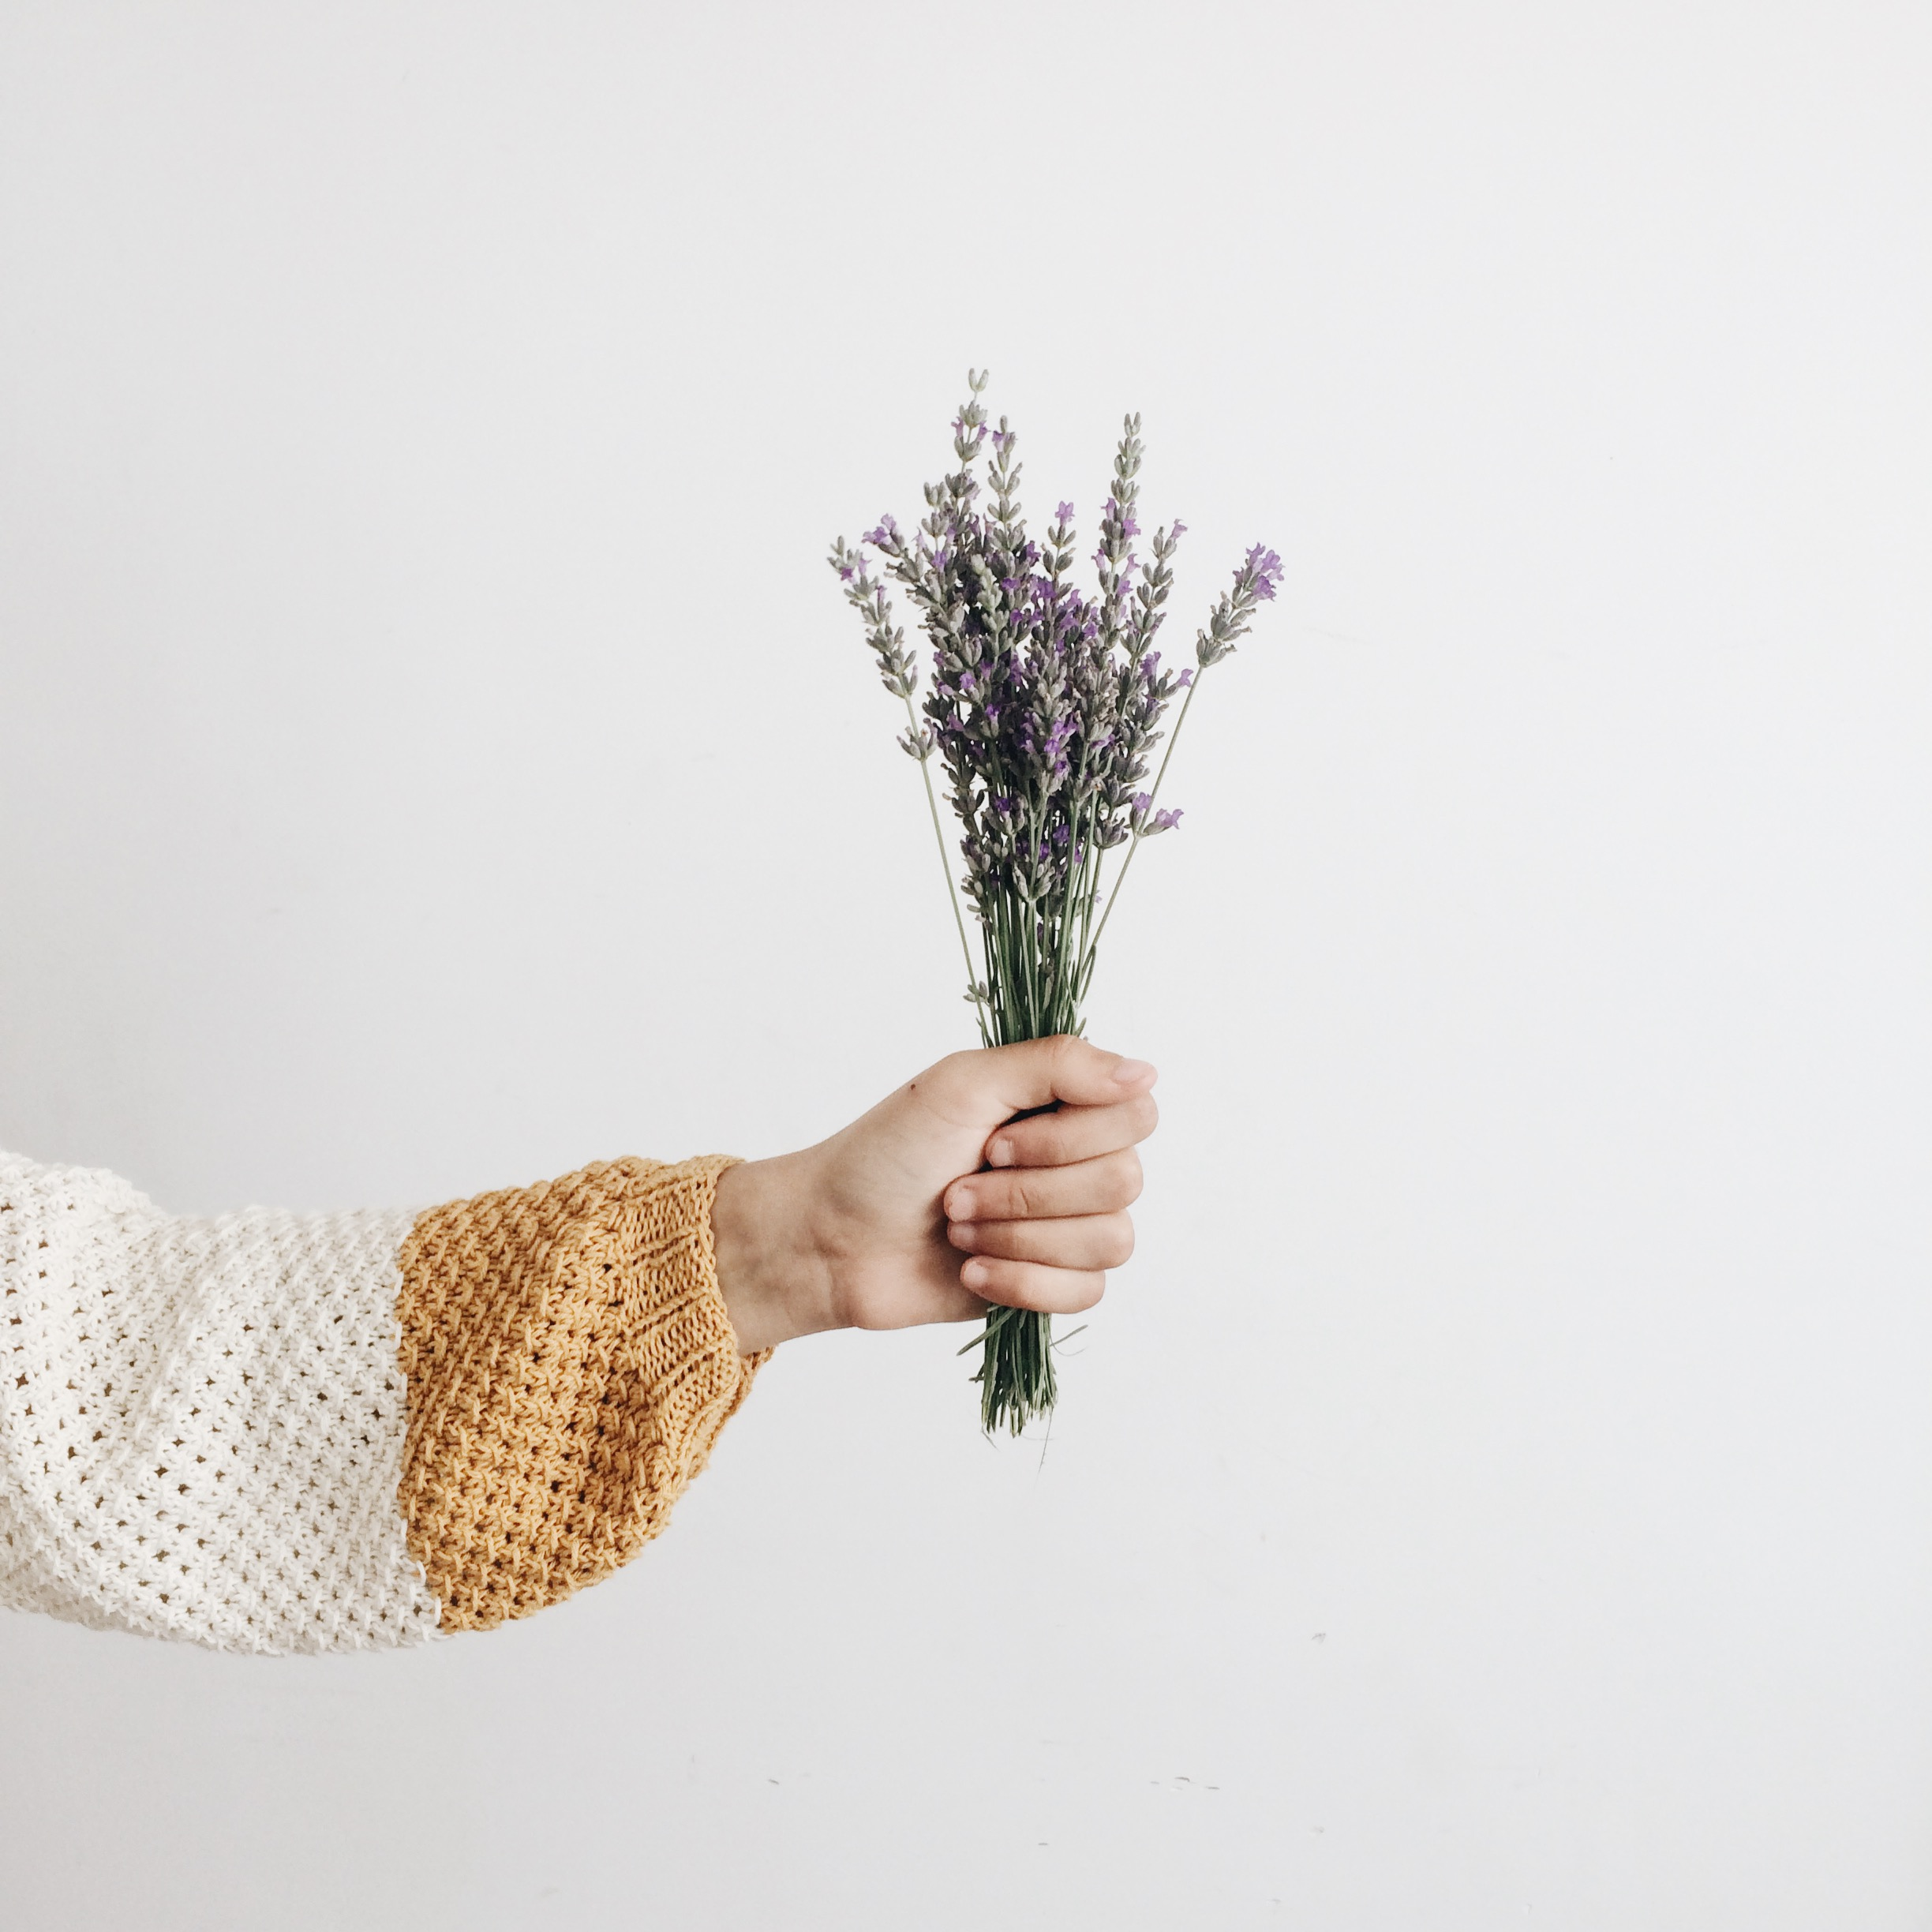 Self Care: Prioritising good sleep with lavender - It is a well known promoter of sleep. The aroma of the oil induces alpha waves in the brain resulting in one feeling relaxed and sleepy.